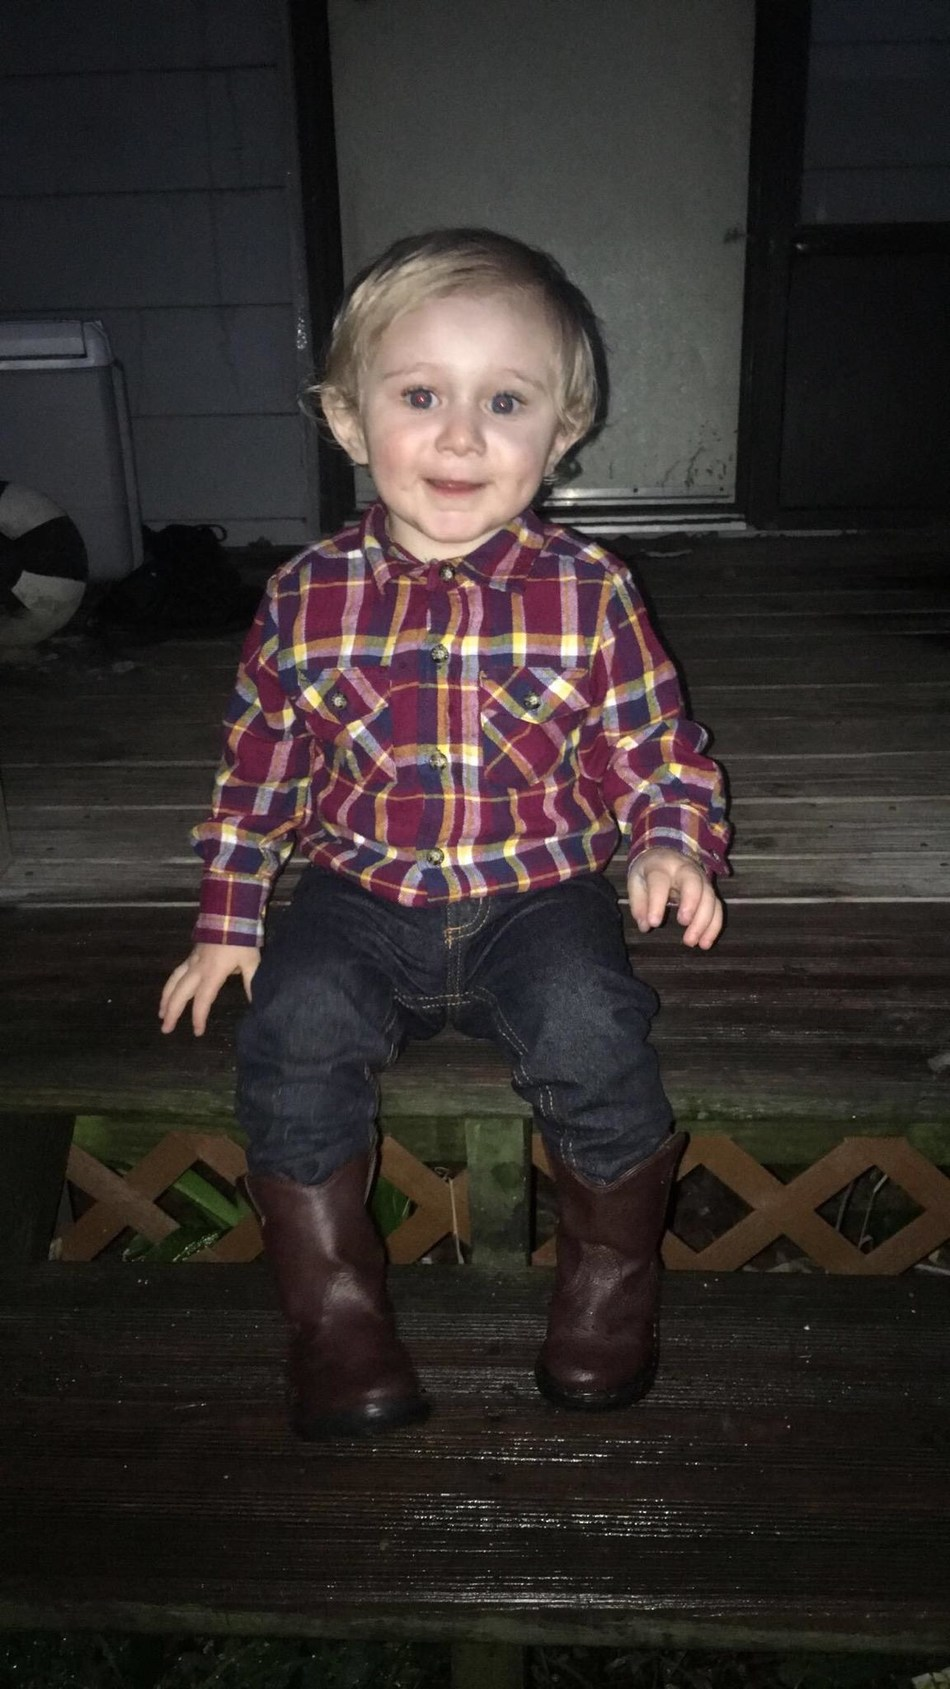 Franklin Parker, 2-Year-Old Dies in Drowning Accident in Retention Pond